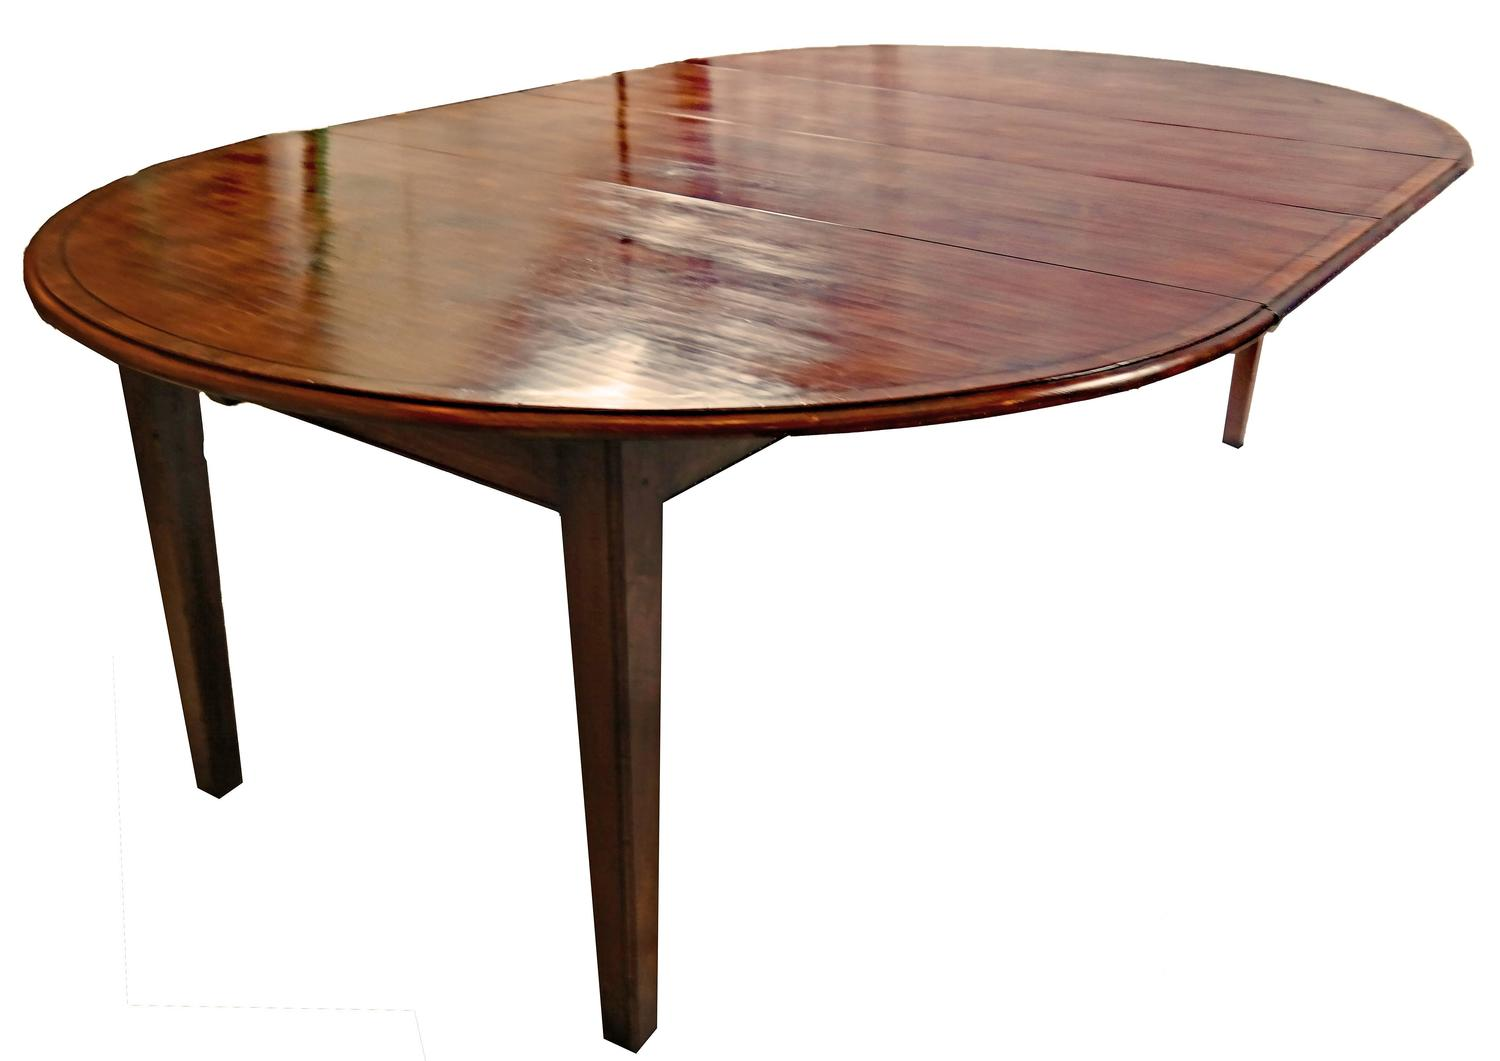 Round cherry yewwood banded dining table for sale at 1stdibs for Round dining room tables for sale